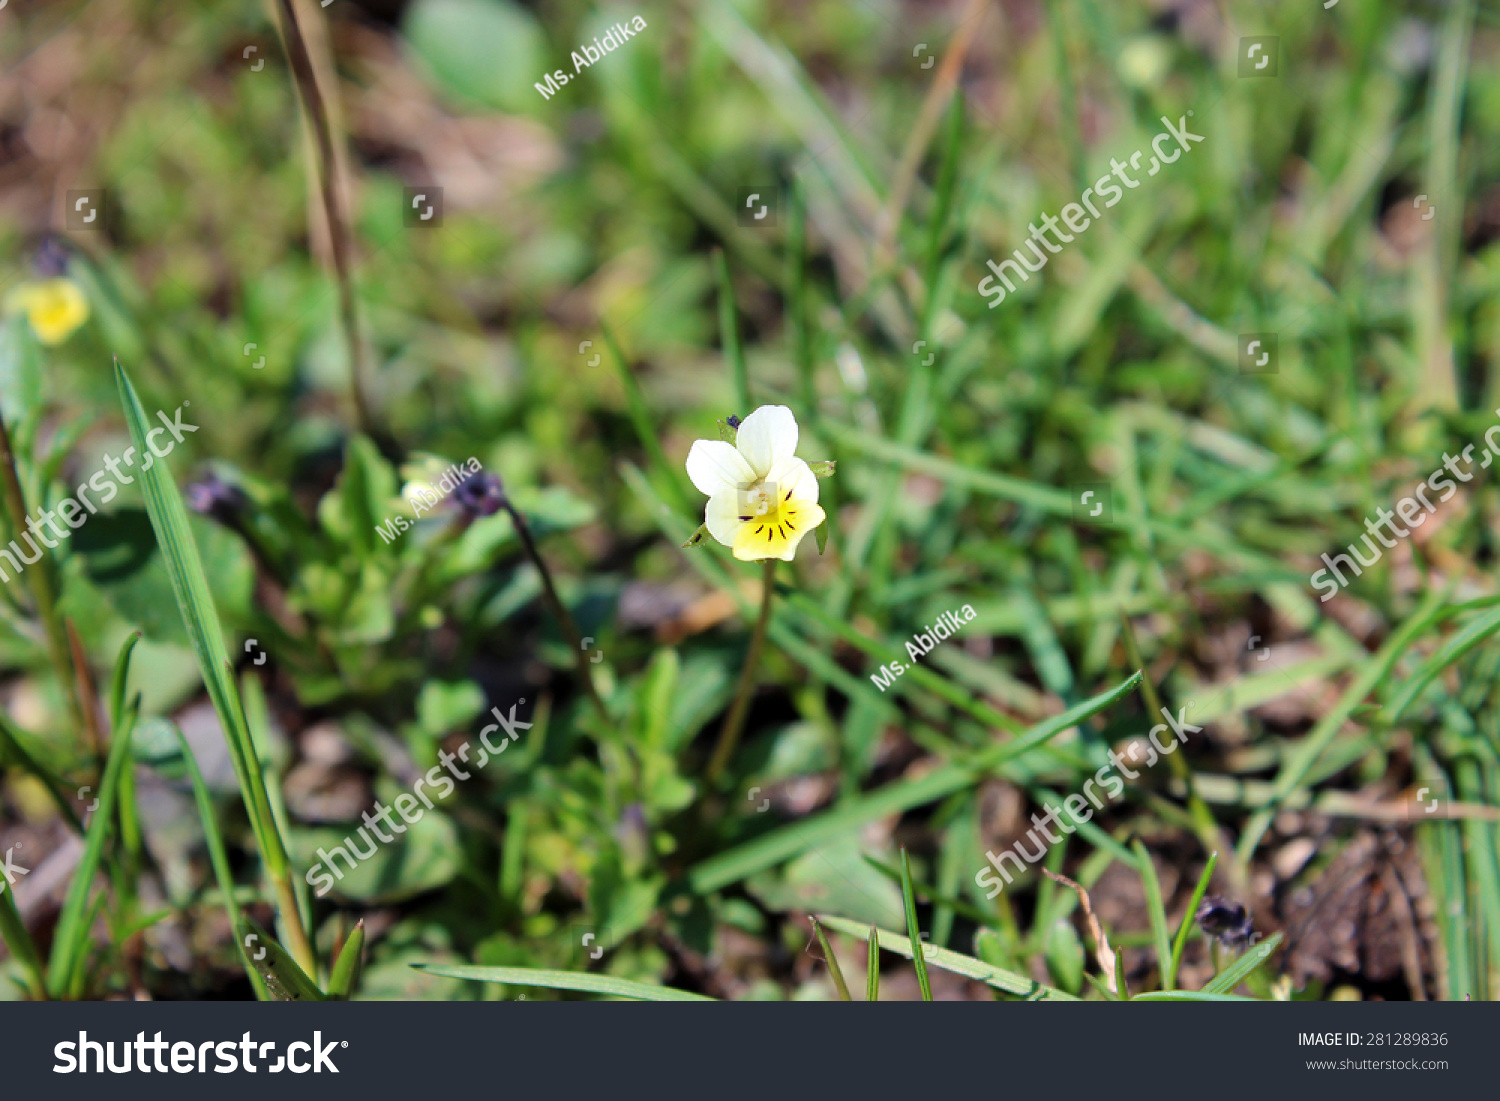 Pansy Flower Small Yellow Flowers Spring Stock Photo Safe To Use